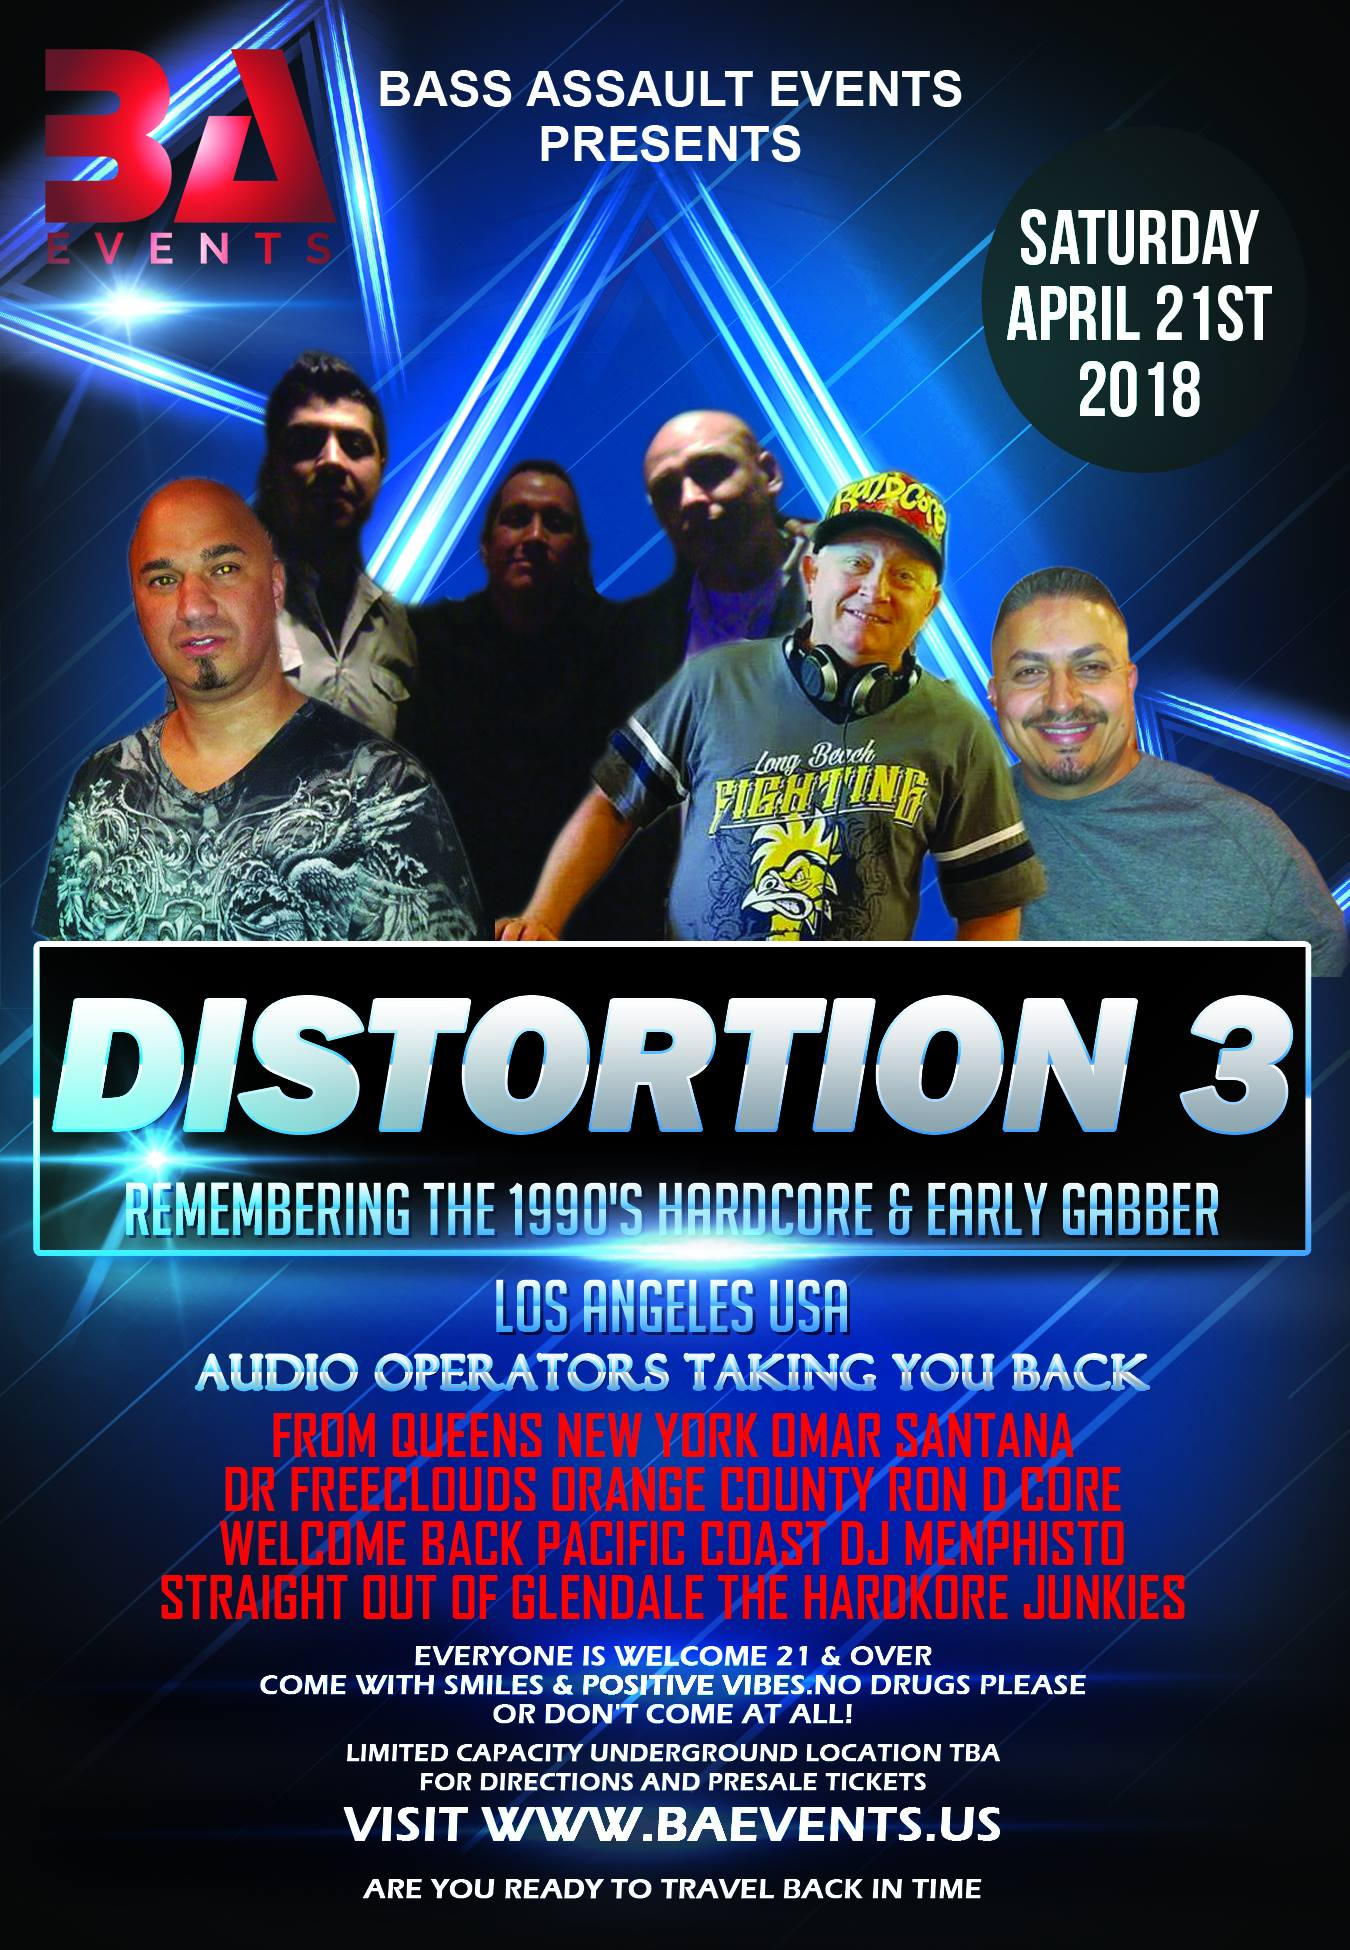 distortion 3 -remembering the 1990s hardcore and early gabber